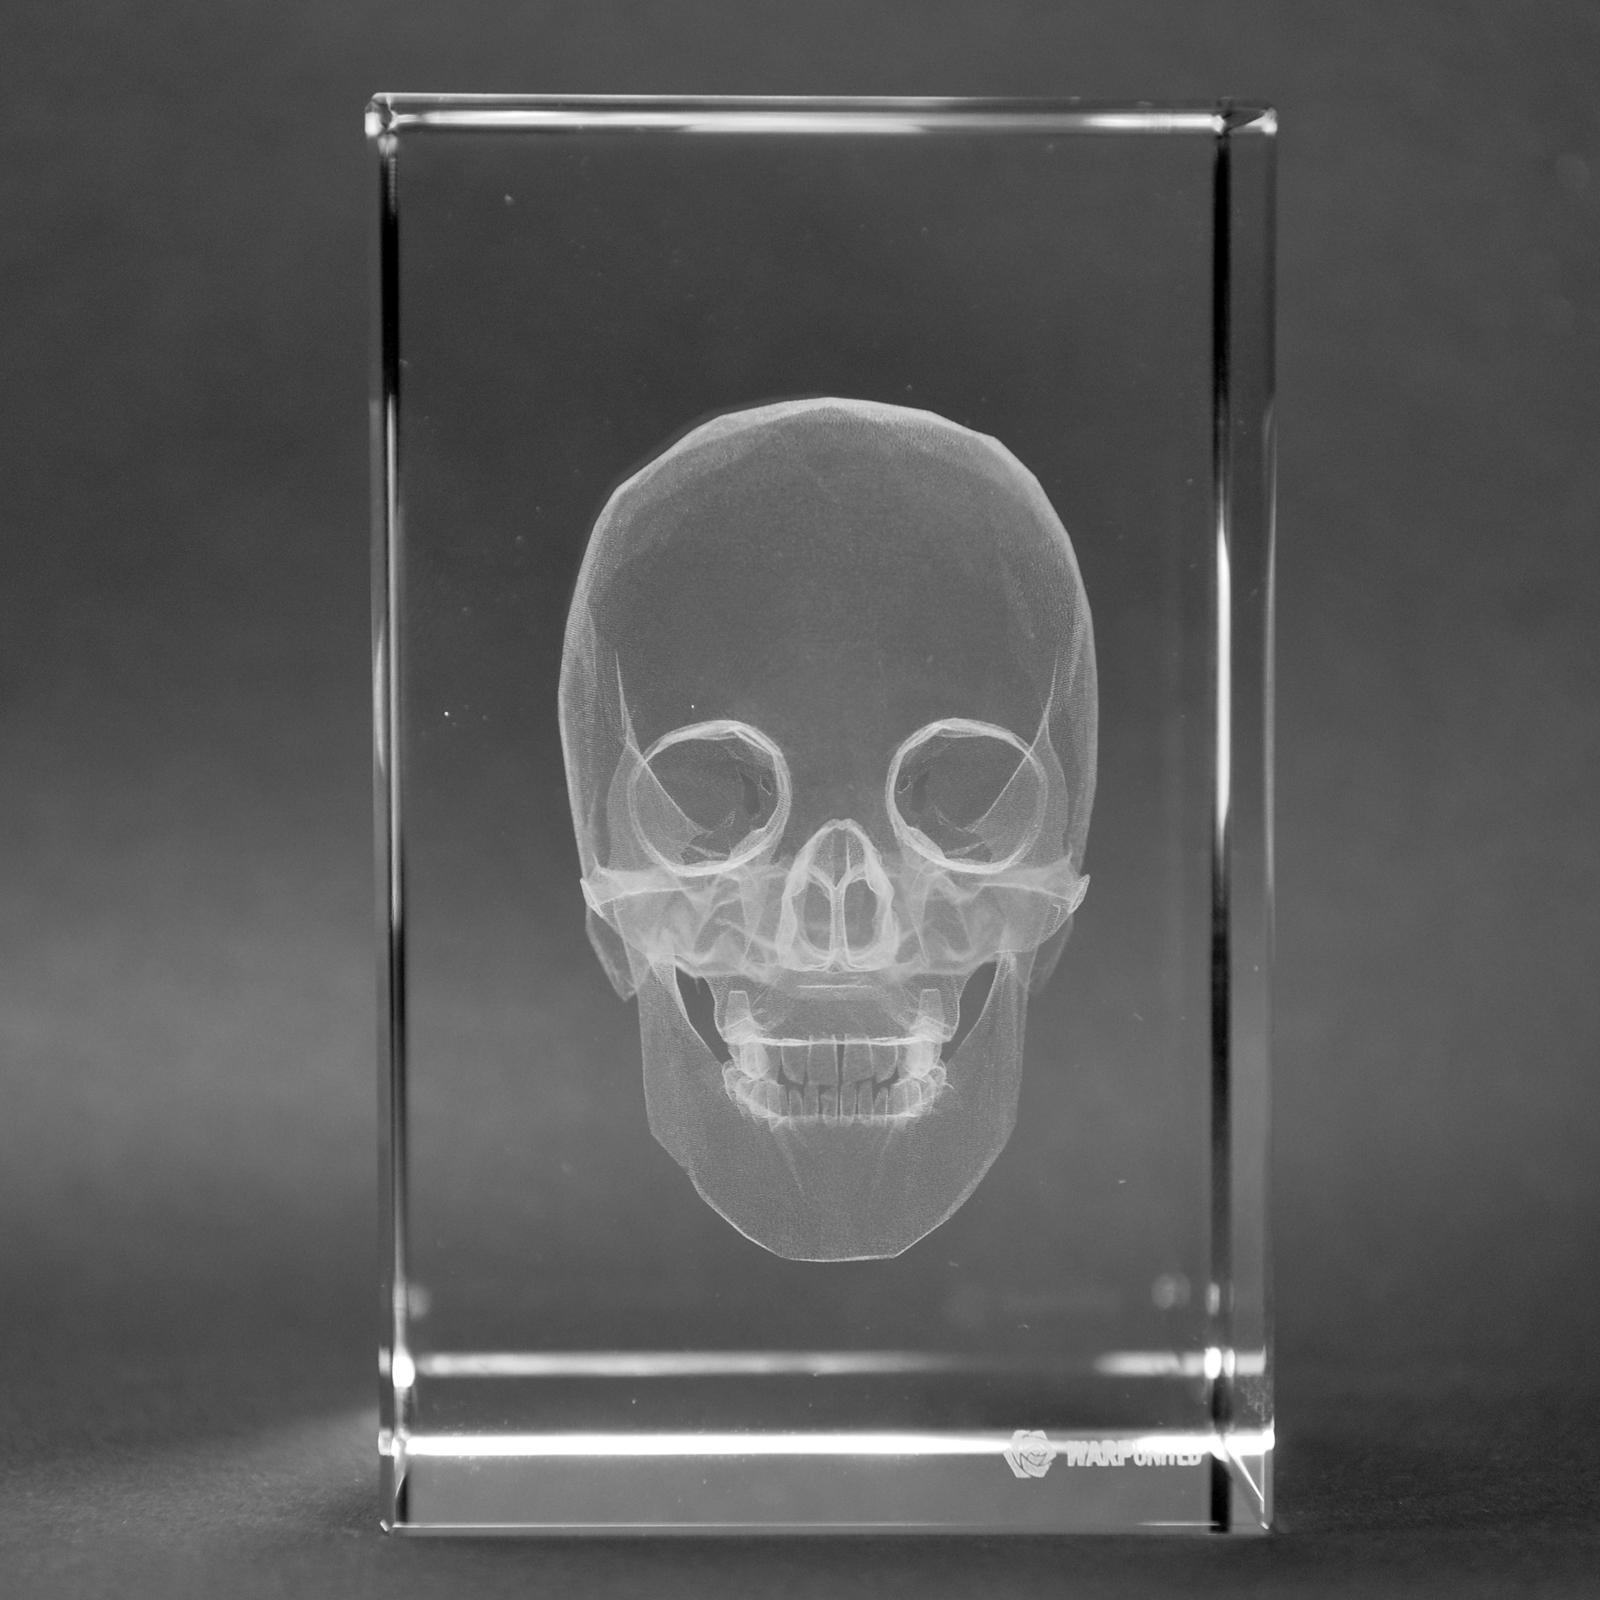 Warp United Crystal 3D Human Skull and Teeth Anatomy High Definition Laser Engraved Medical Science Gift Table Decoration 1lb Optical Glass